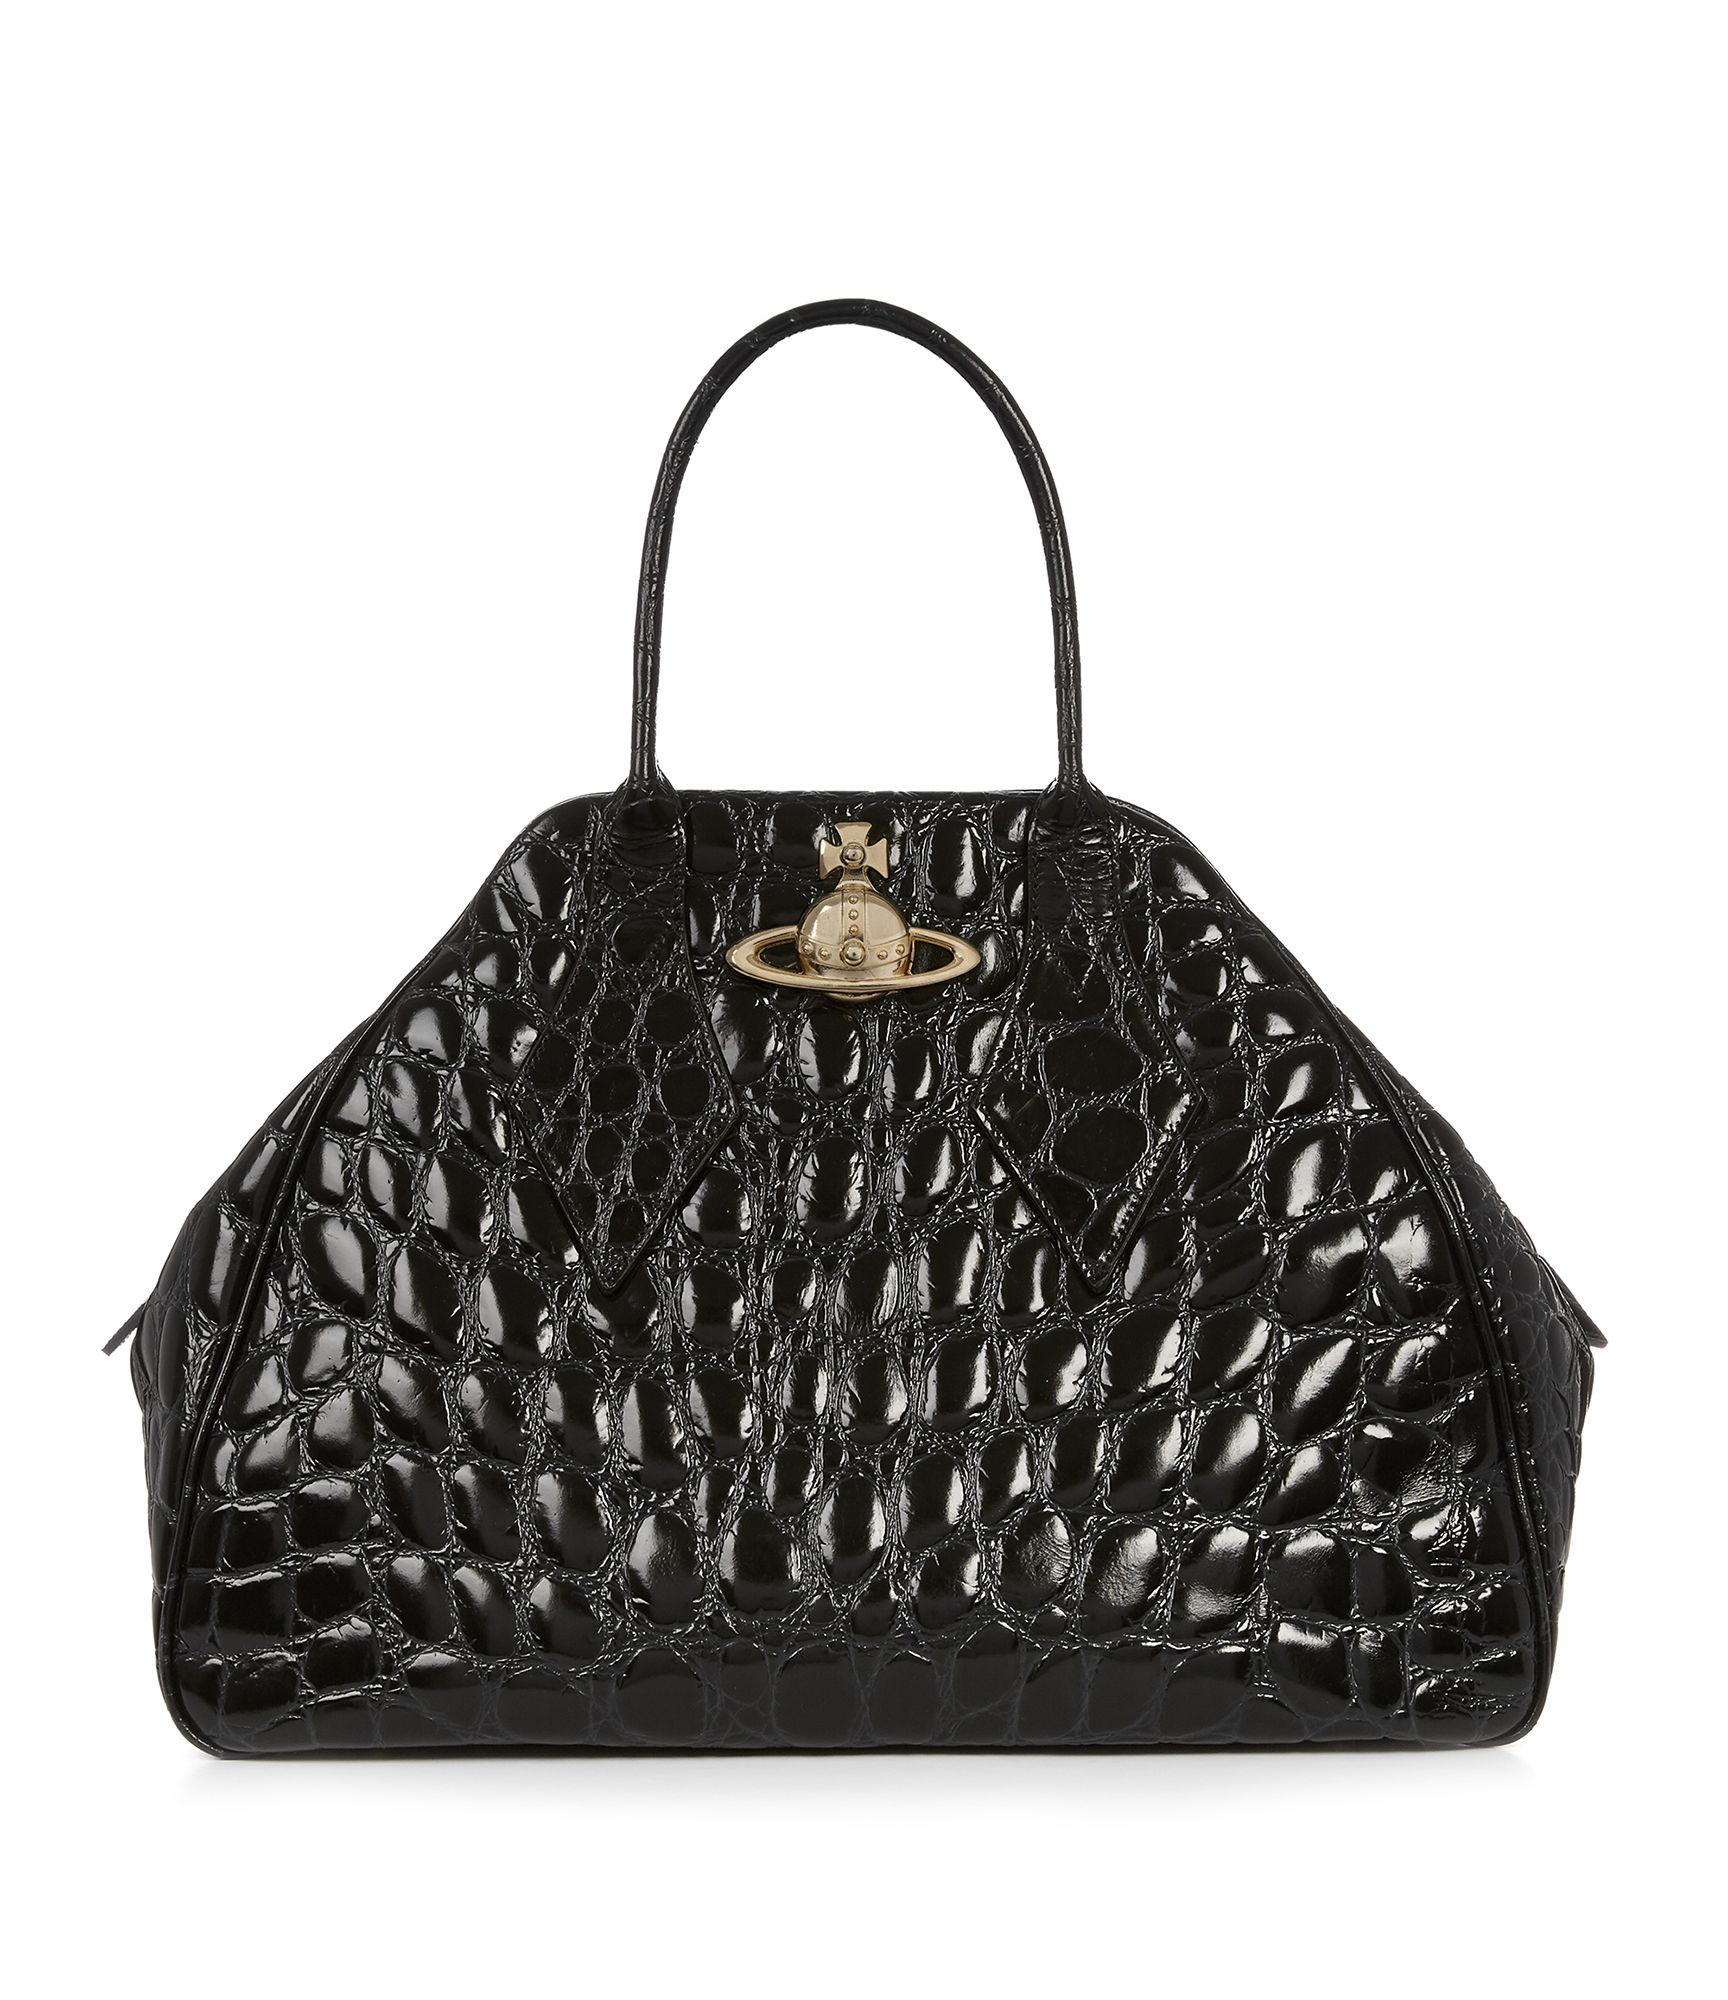 Vivienne Westwood Large Yasmine Bag 45010001 Black